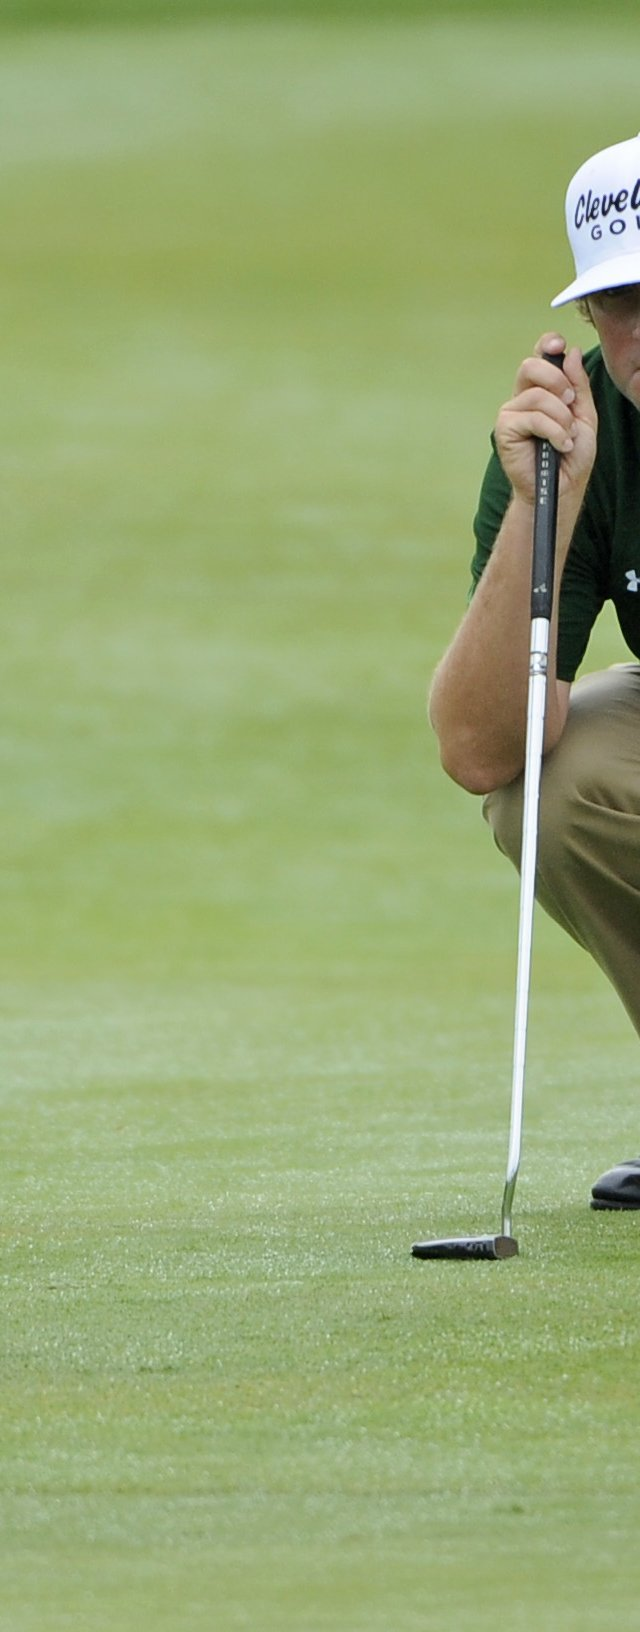 Steve Marino lines up a putt on the first green during the third round of The Barclays at Liberty National.